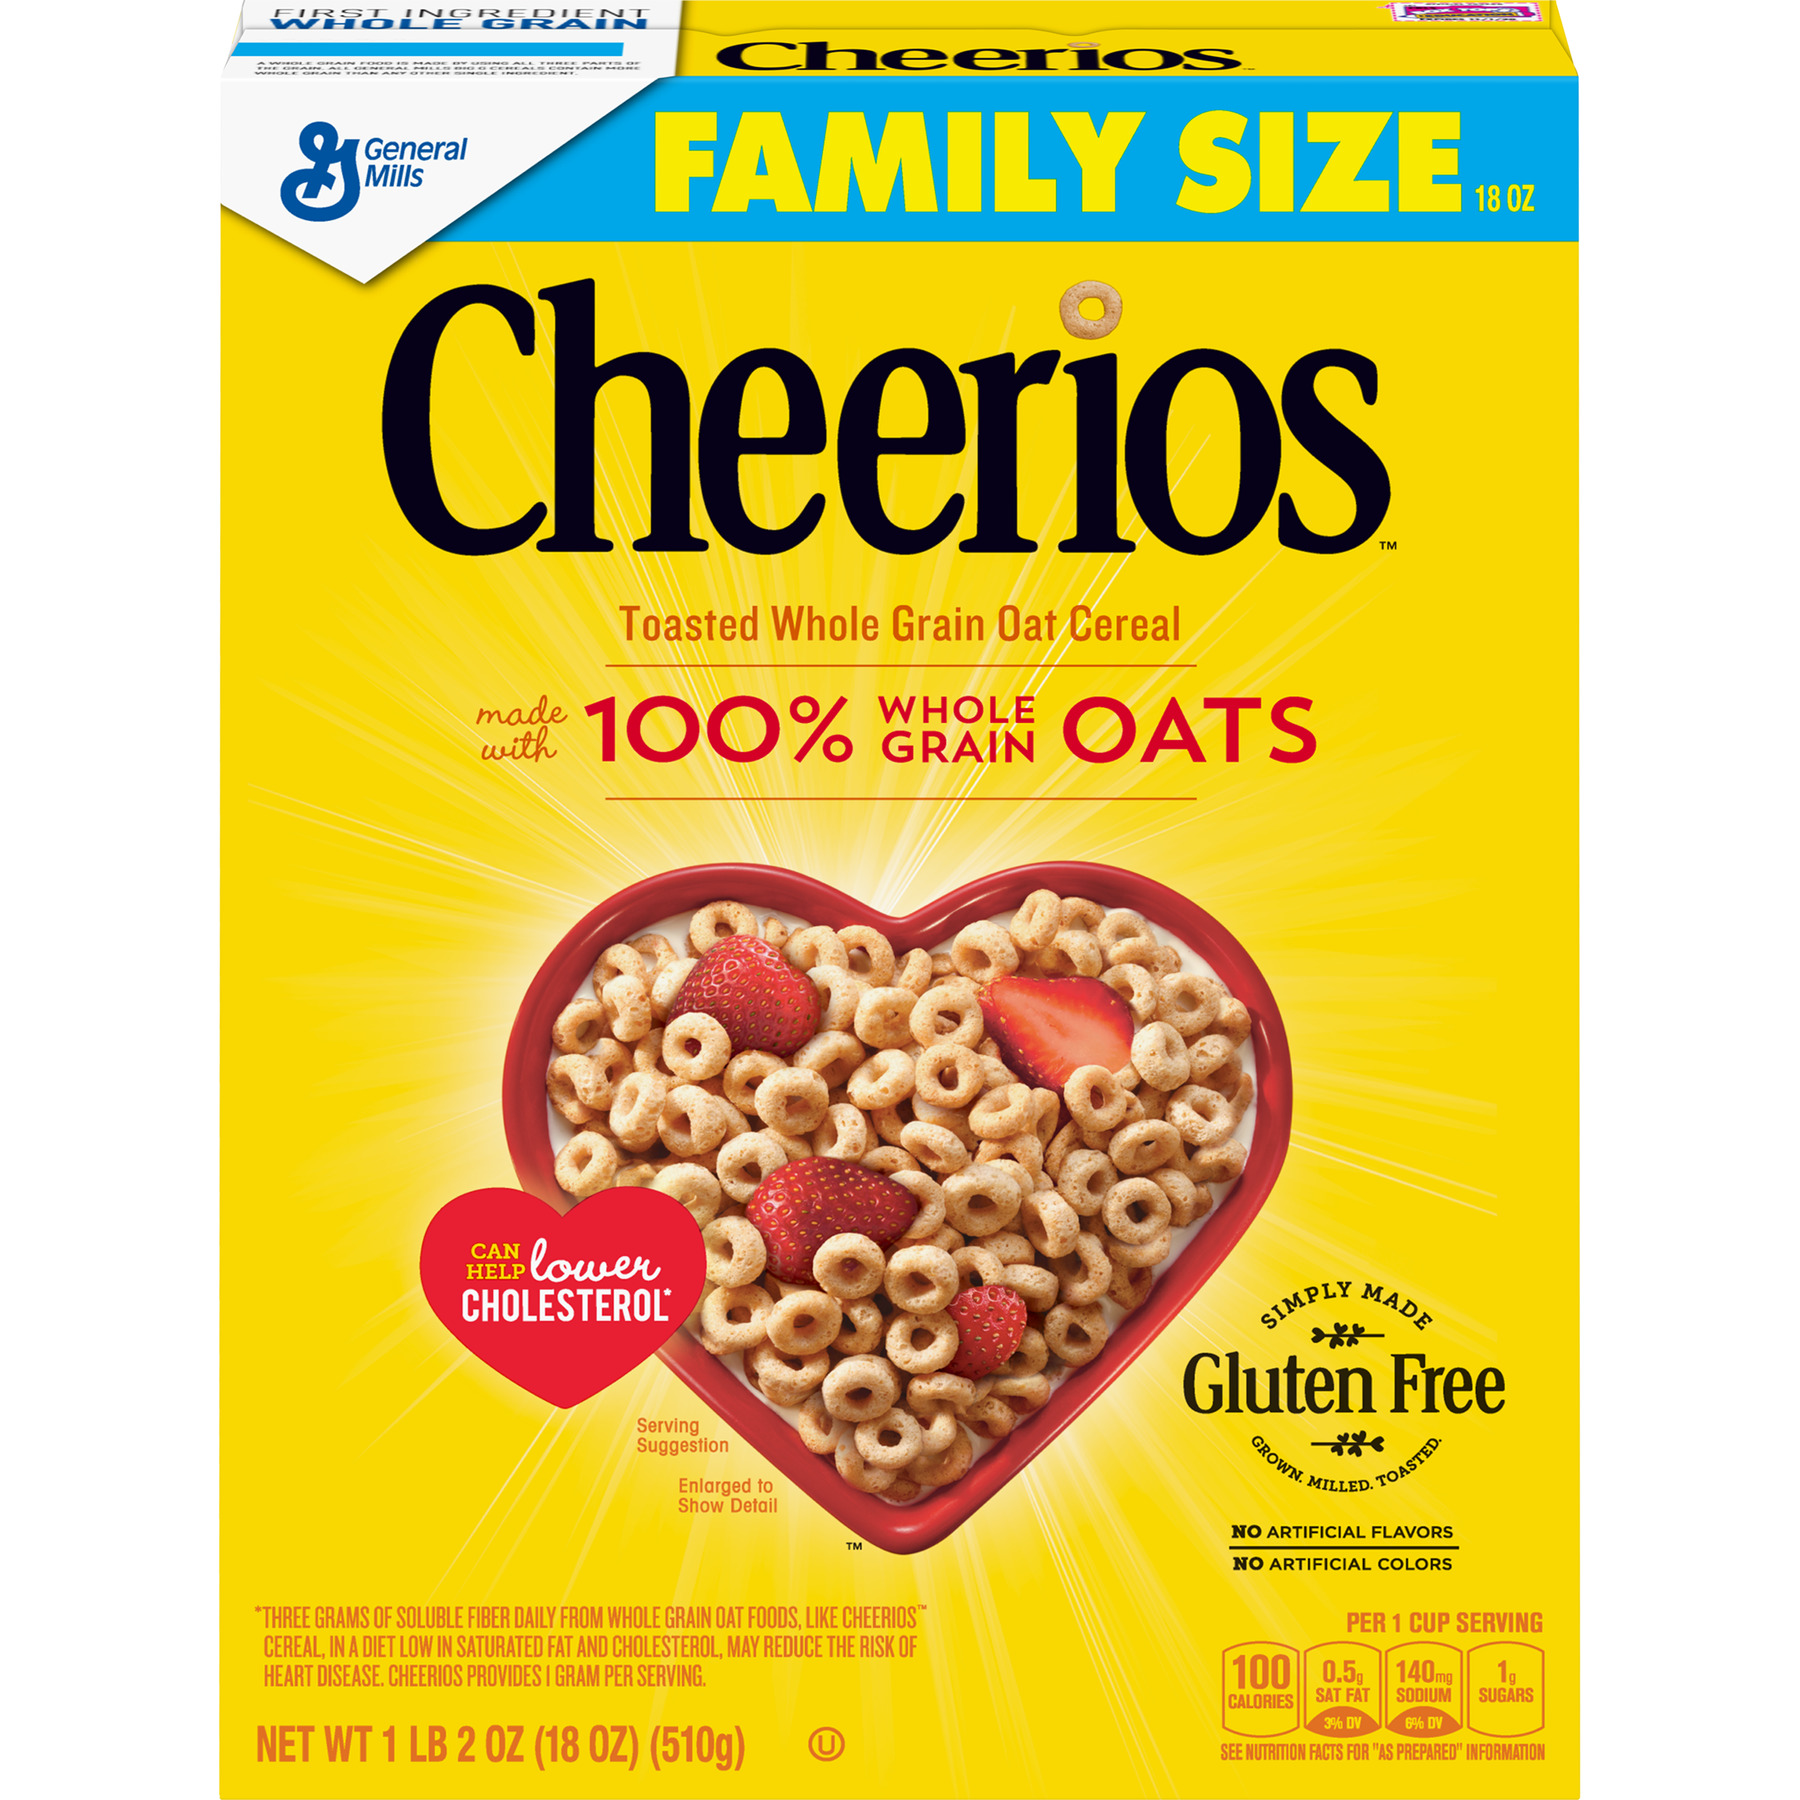 Cheerios Gluten Free Breakfast Cereal, 18 oz Box